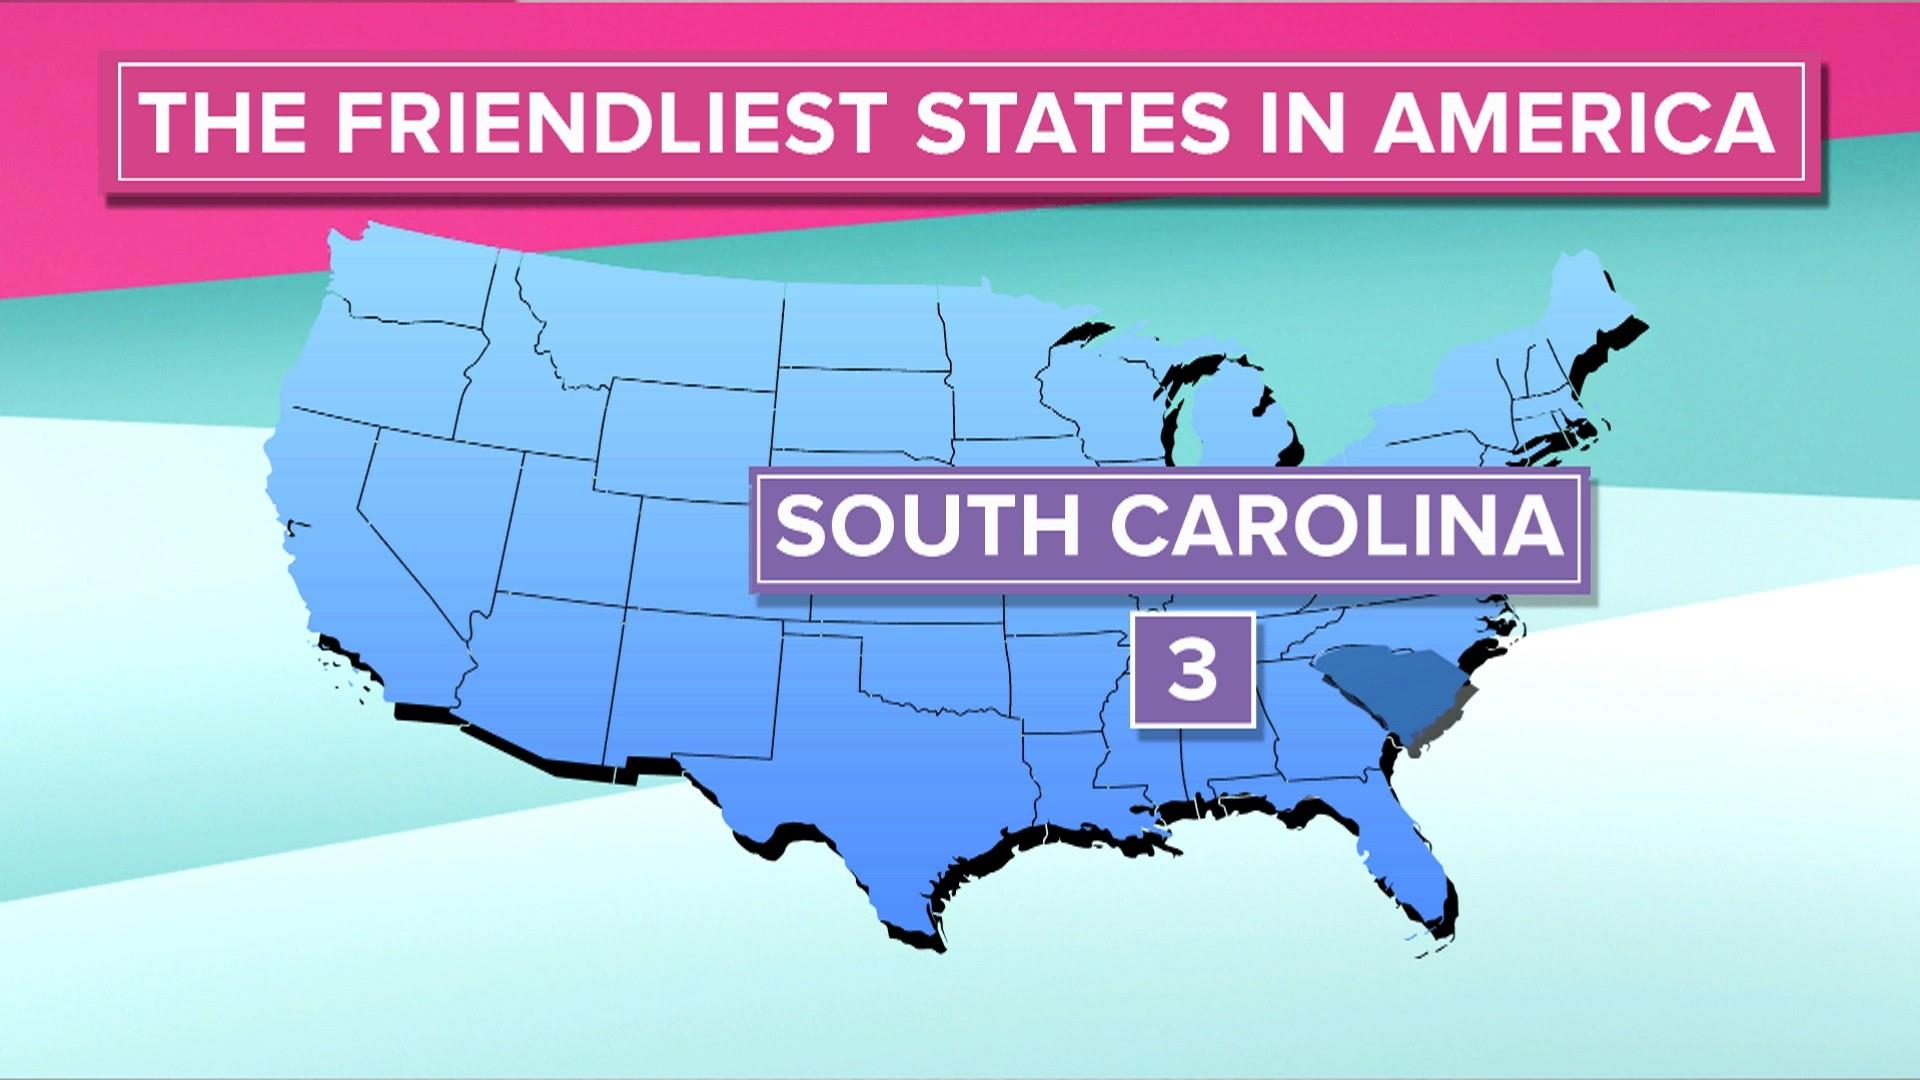 These are the friendliest states in the US